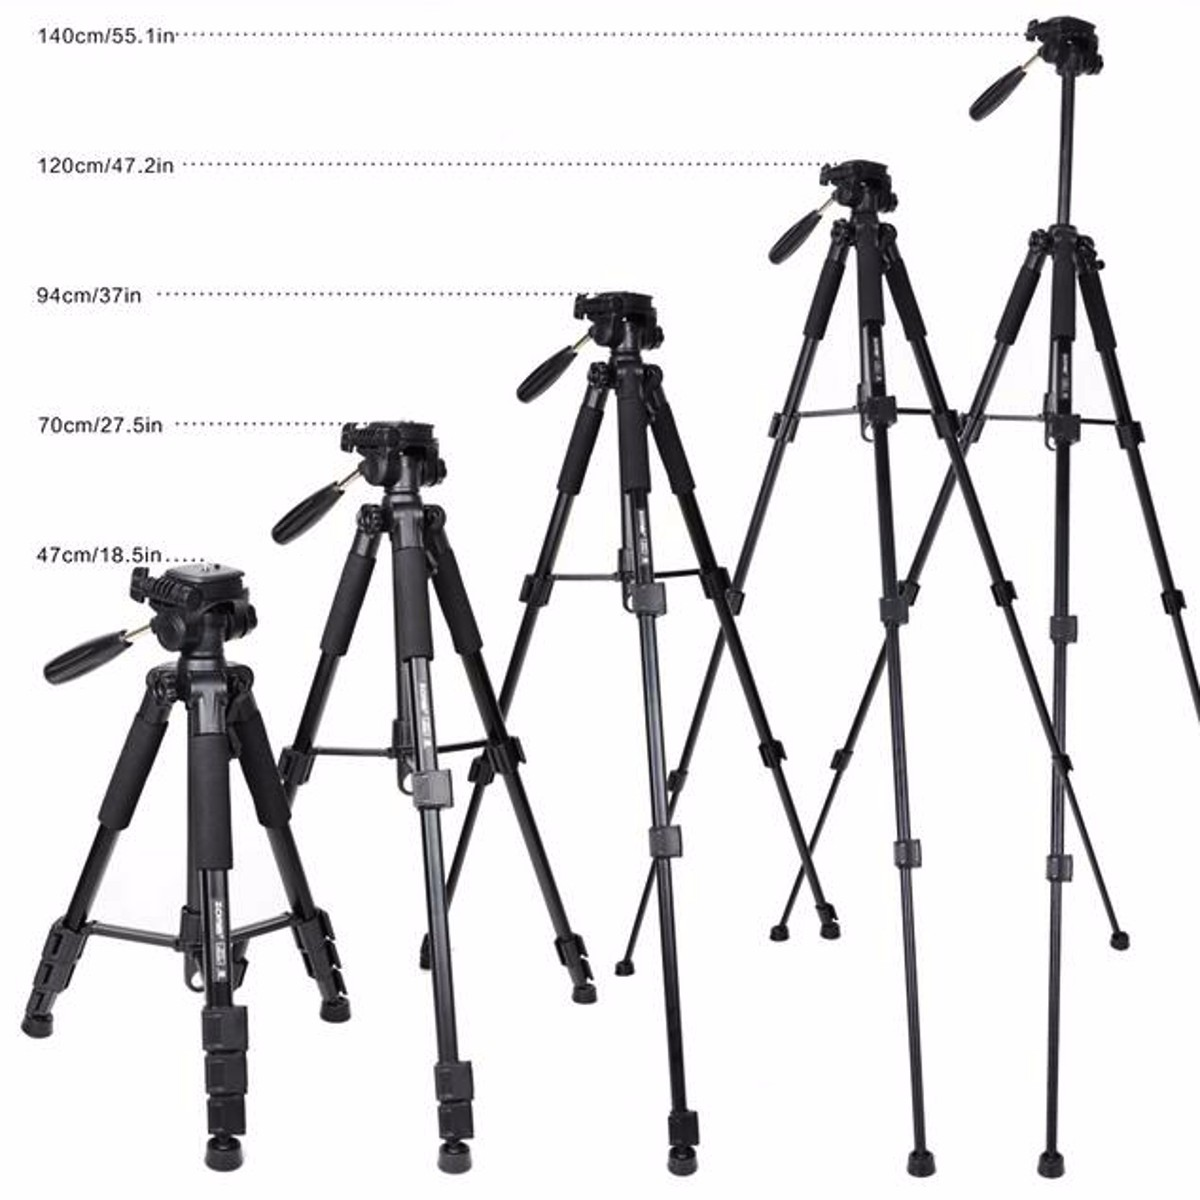 QZSD Q111 Professional Travel Aluminium Tripod Monopod With Ball Head For DSLR Camera